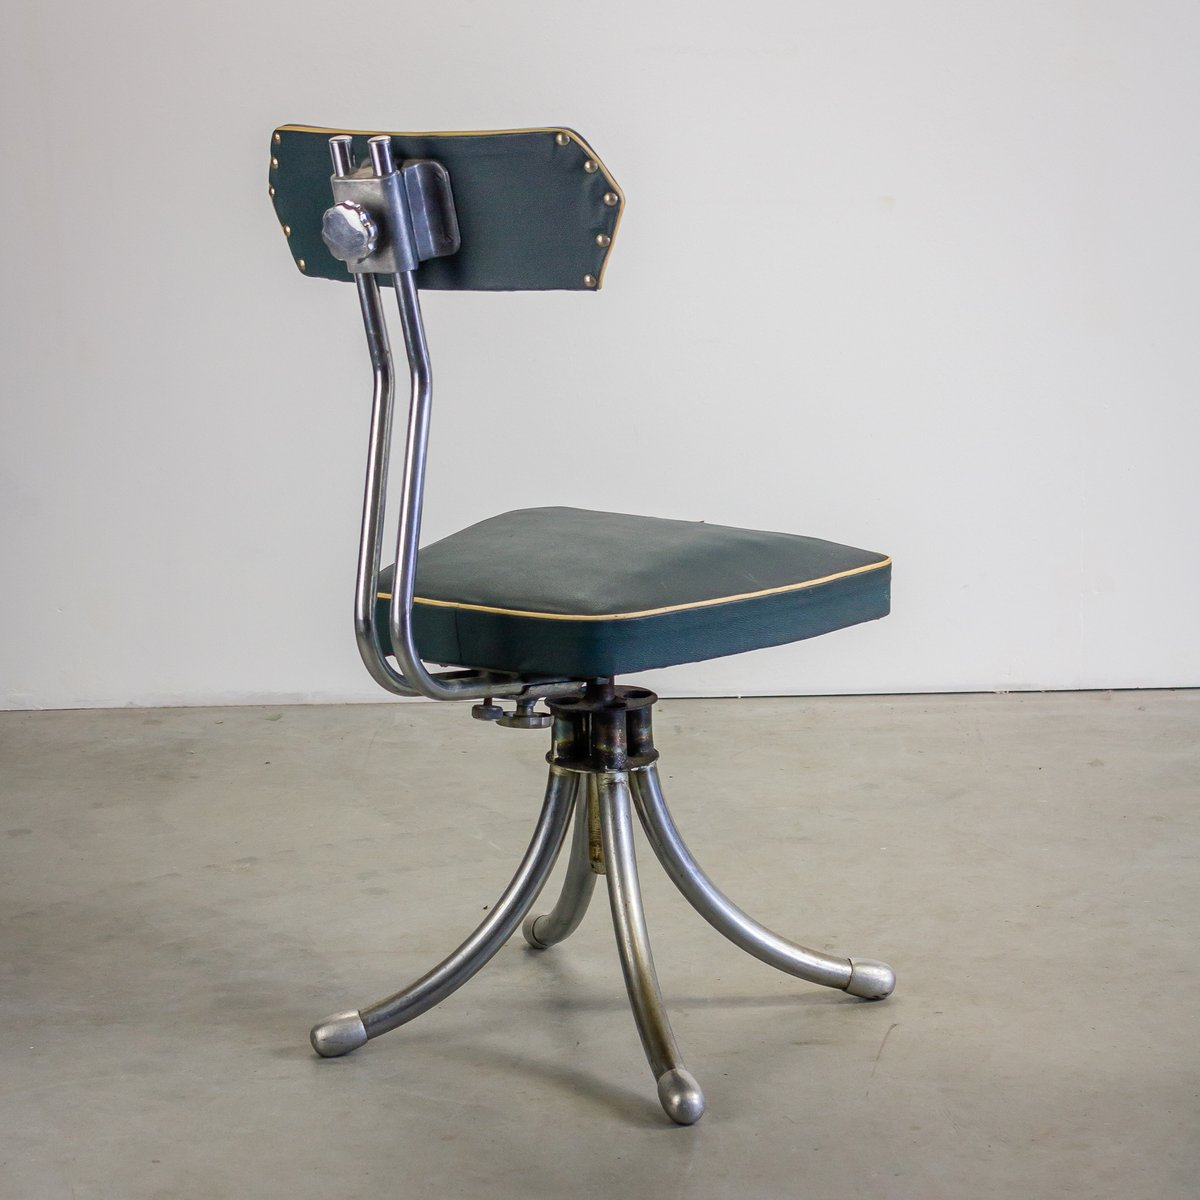 French industrial design desk chair 1950s for sale at pamono for Industrial design chair